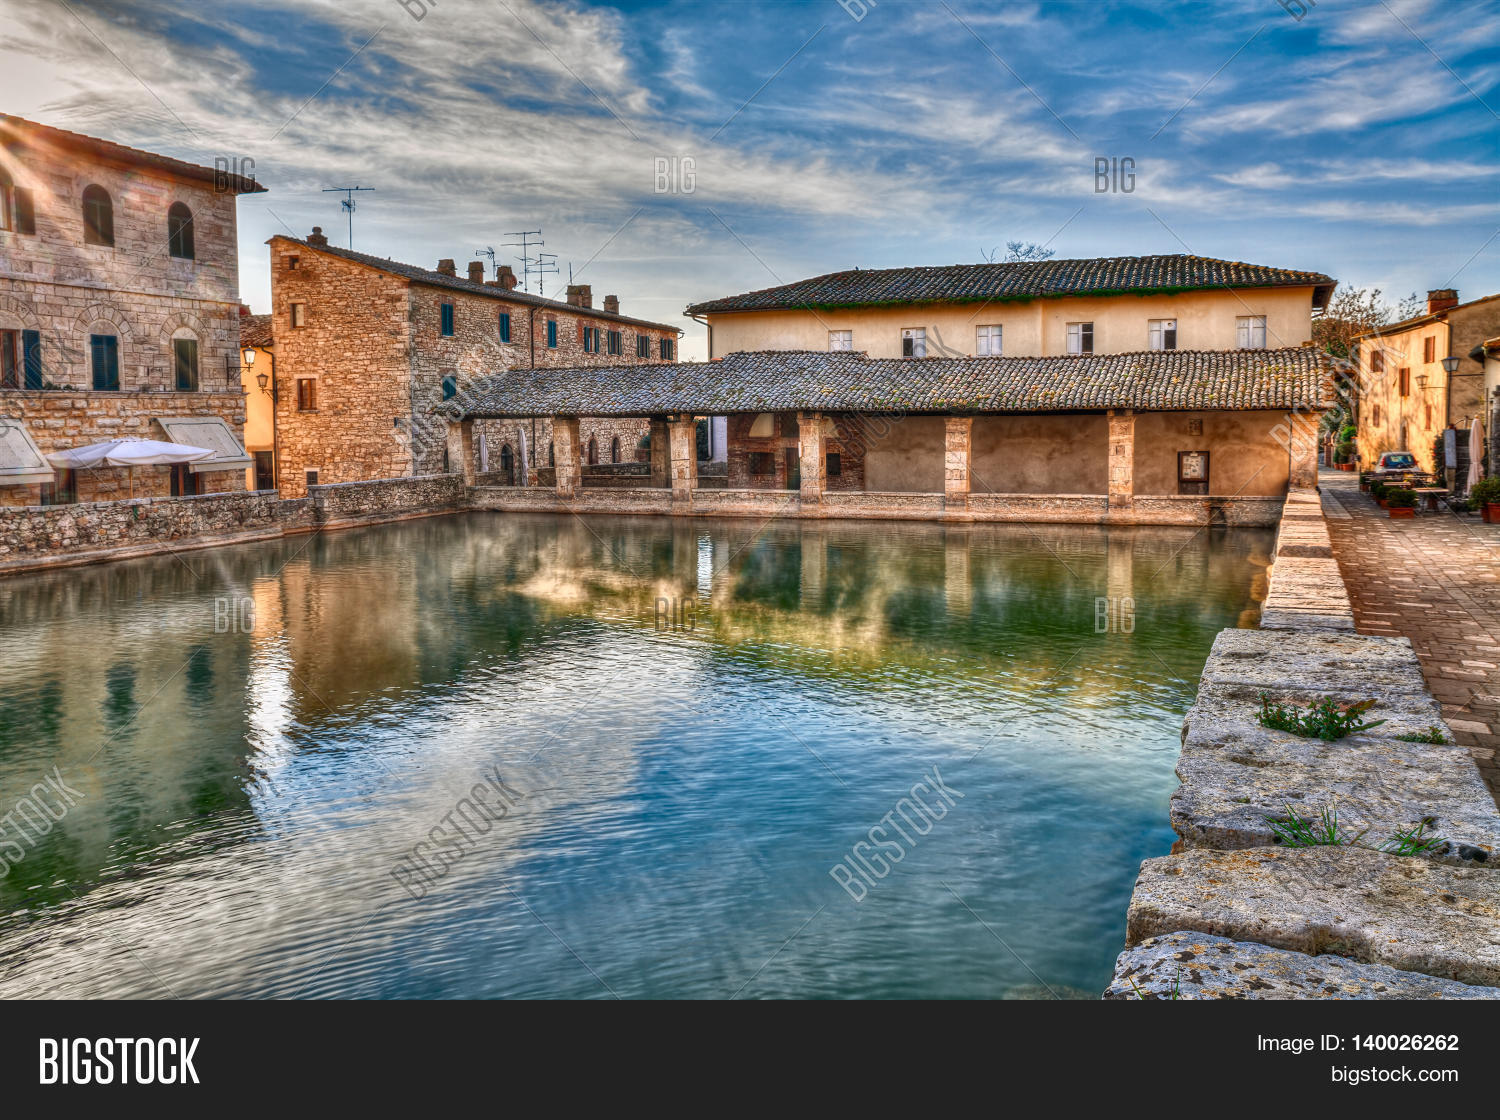 bagno vignoni siena tuscany italy old thermal baths at dawn in the